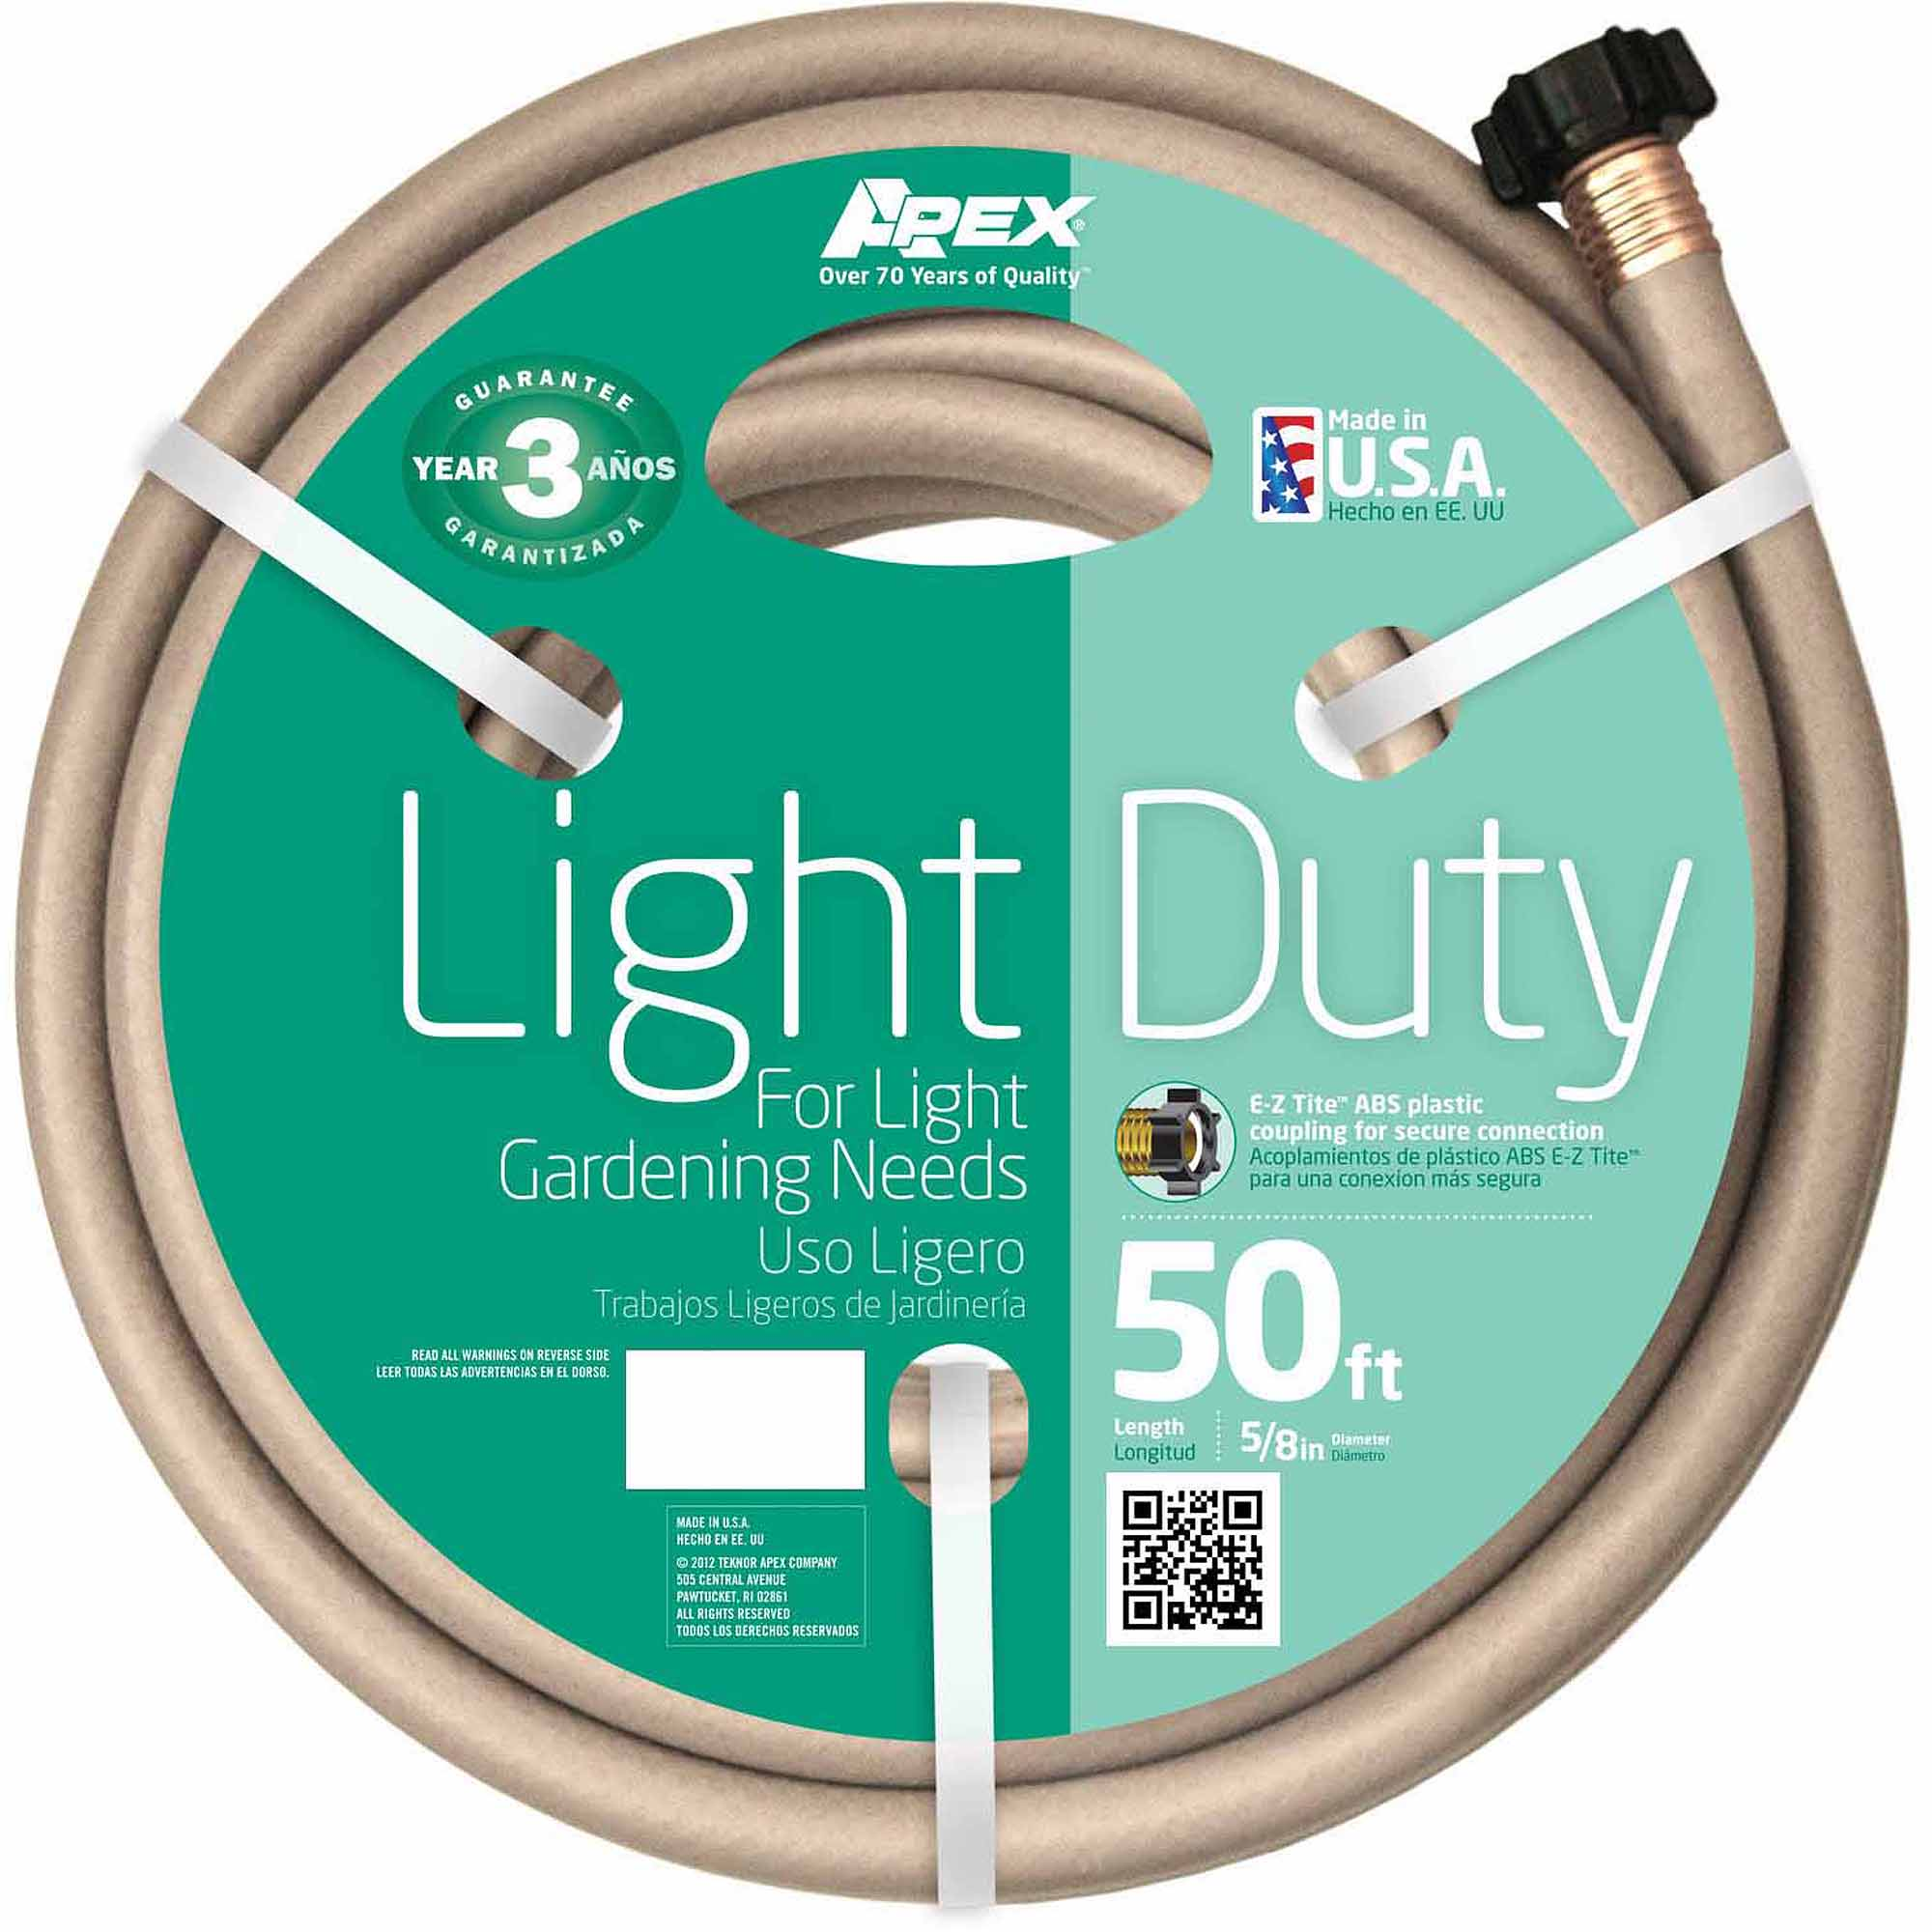 "Teknor Apex 8400-50 5/8"" x 50' Light Duty Garden Hose"